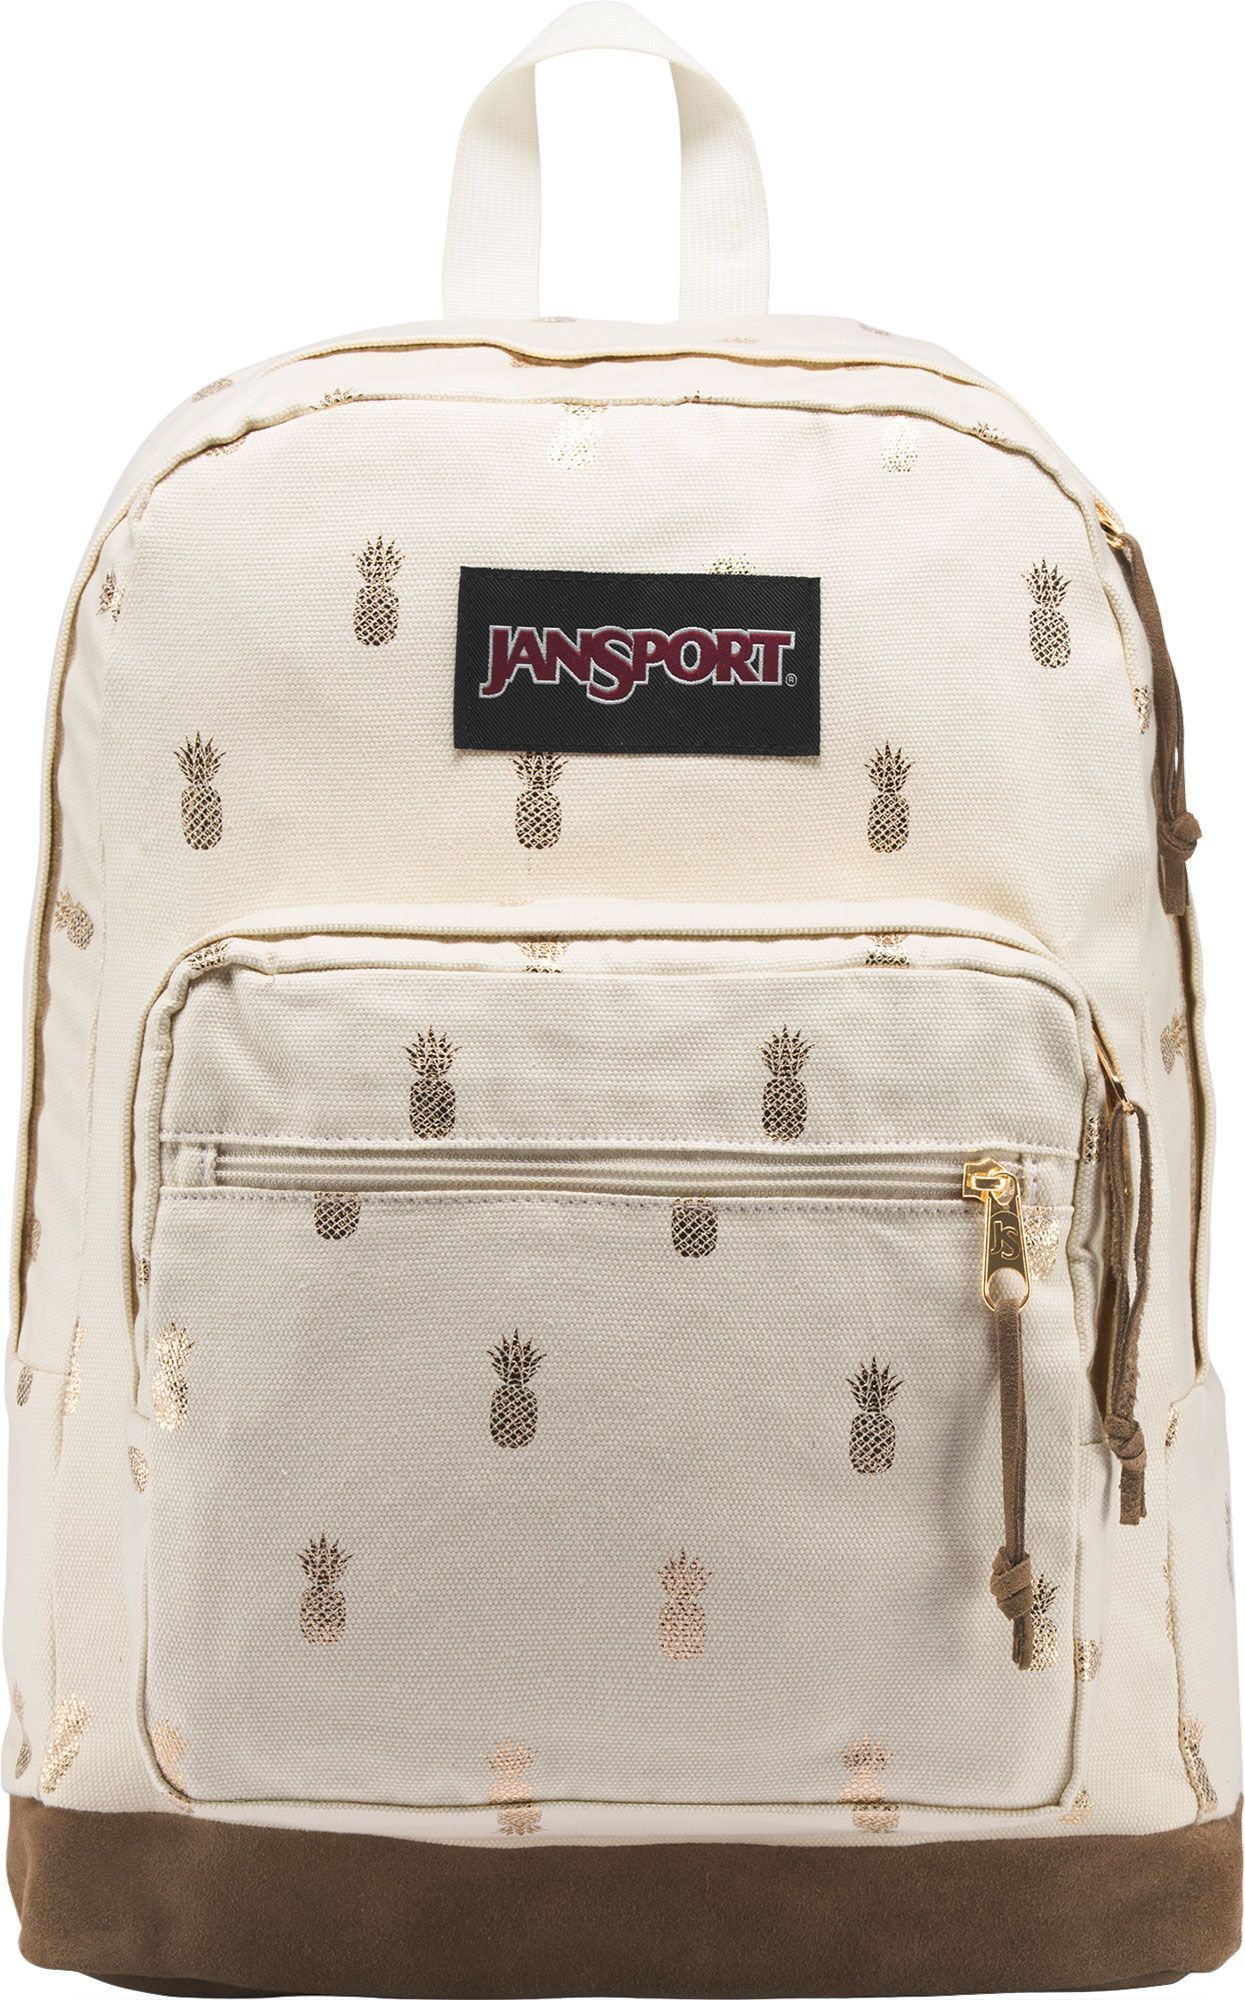 135ad952f0f JanSport Right Pack Expressions Backpack in 2019